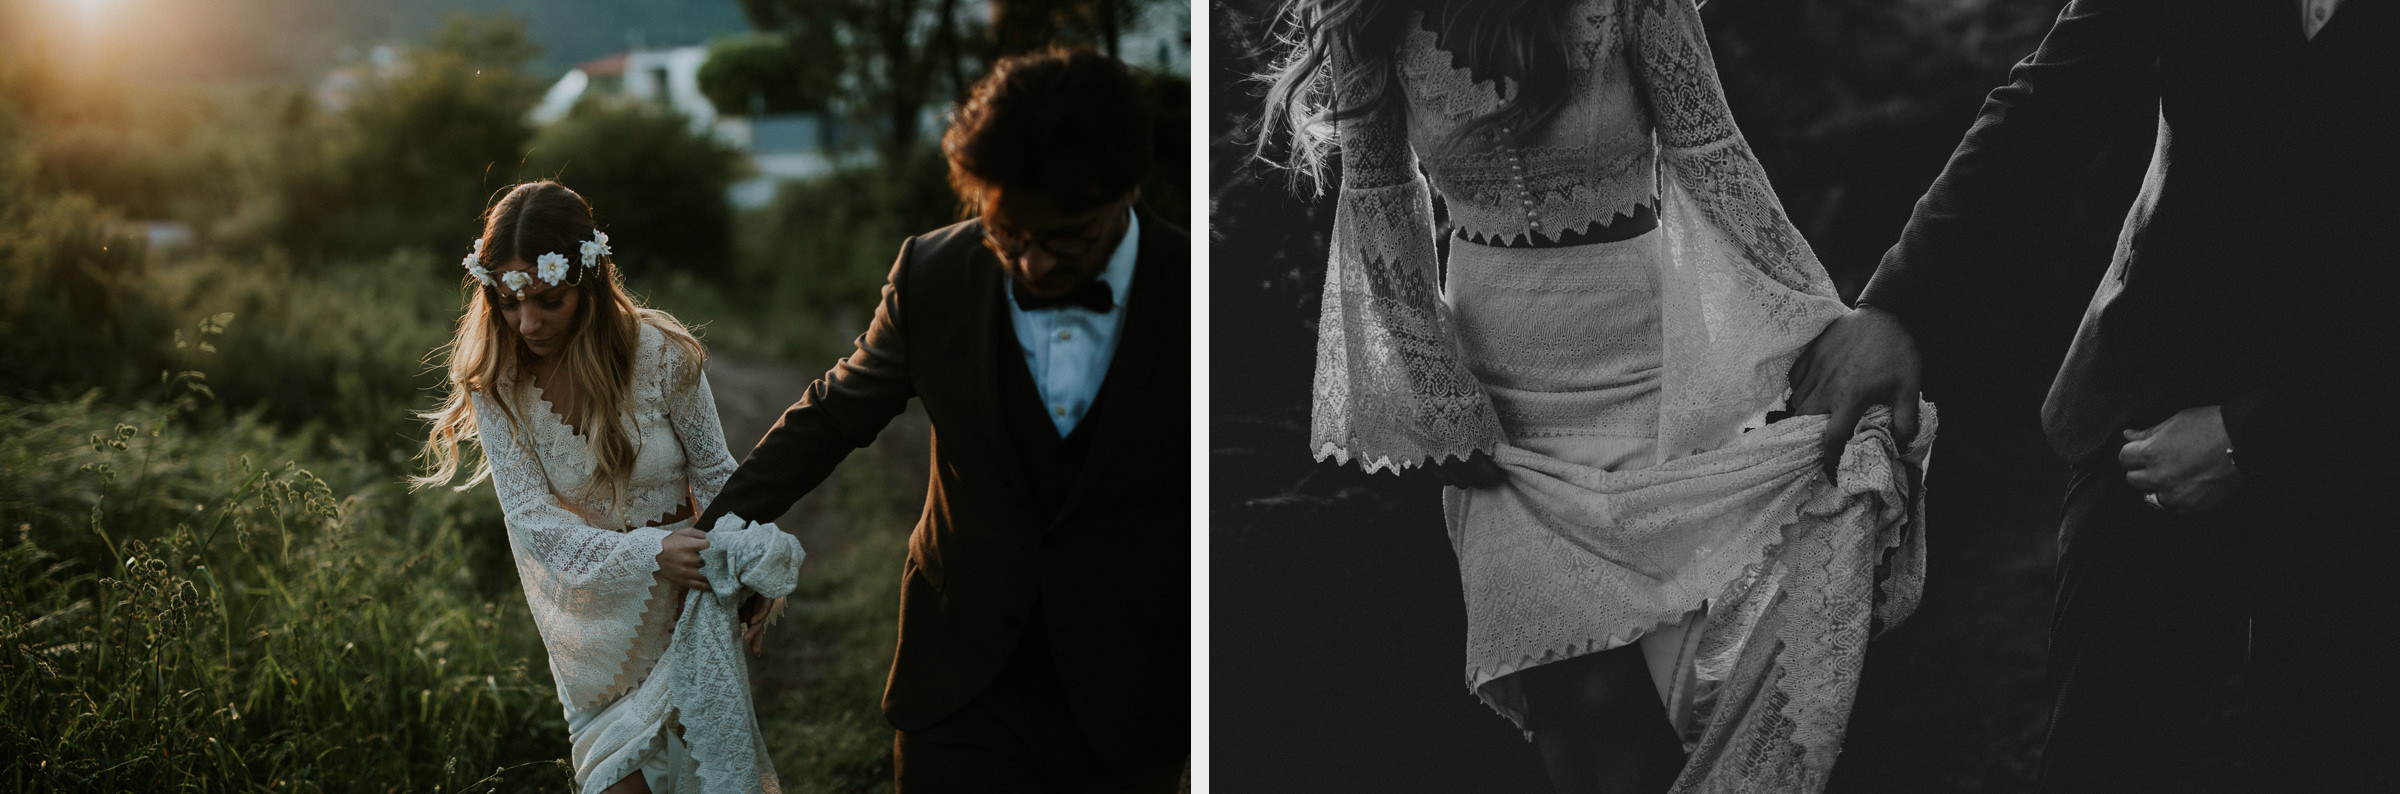 two photo montage of boho chic bride and groom session during their wedding day in the woods on the sunset